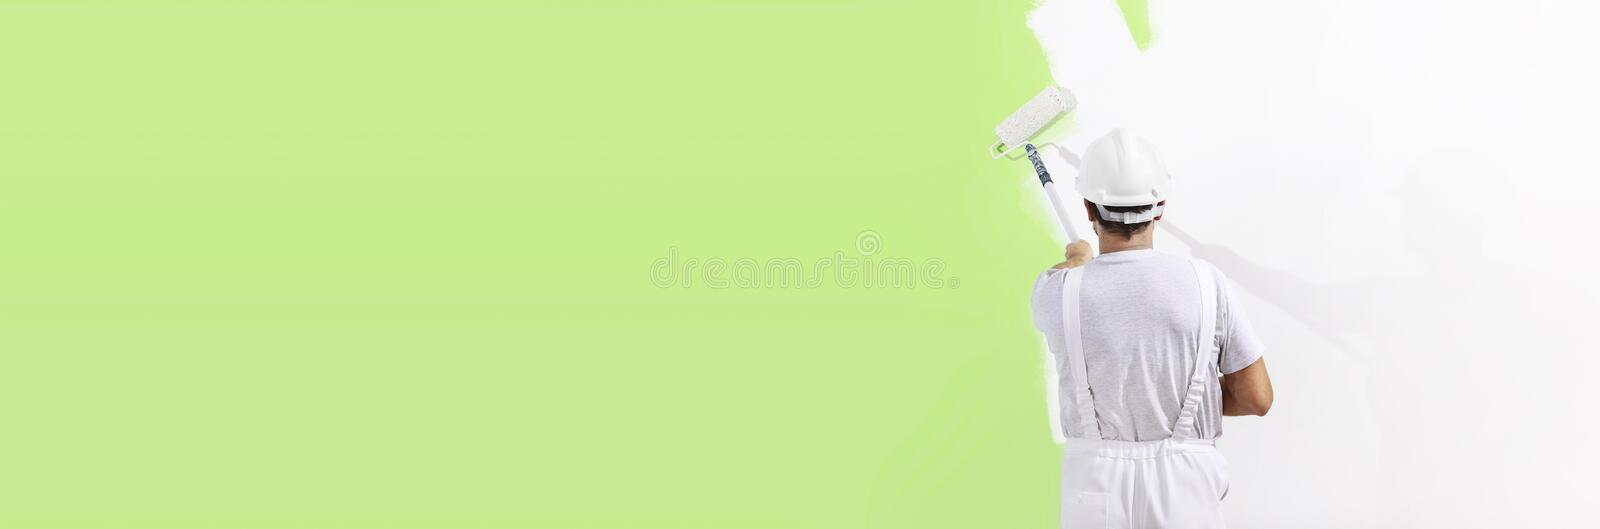 Painter man at work with a paint roller, wall painting green col royalty free stock photos